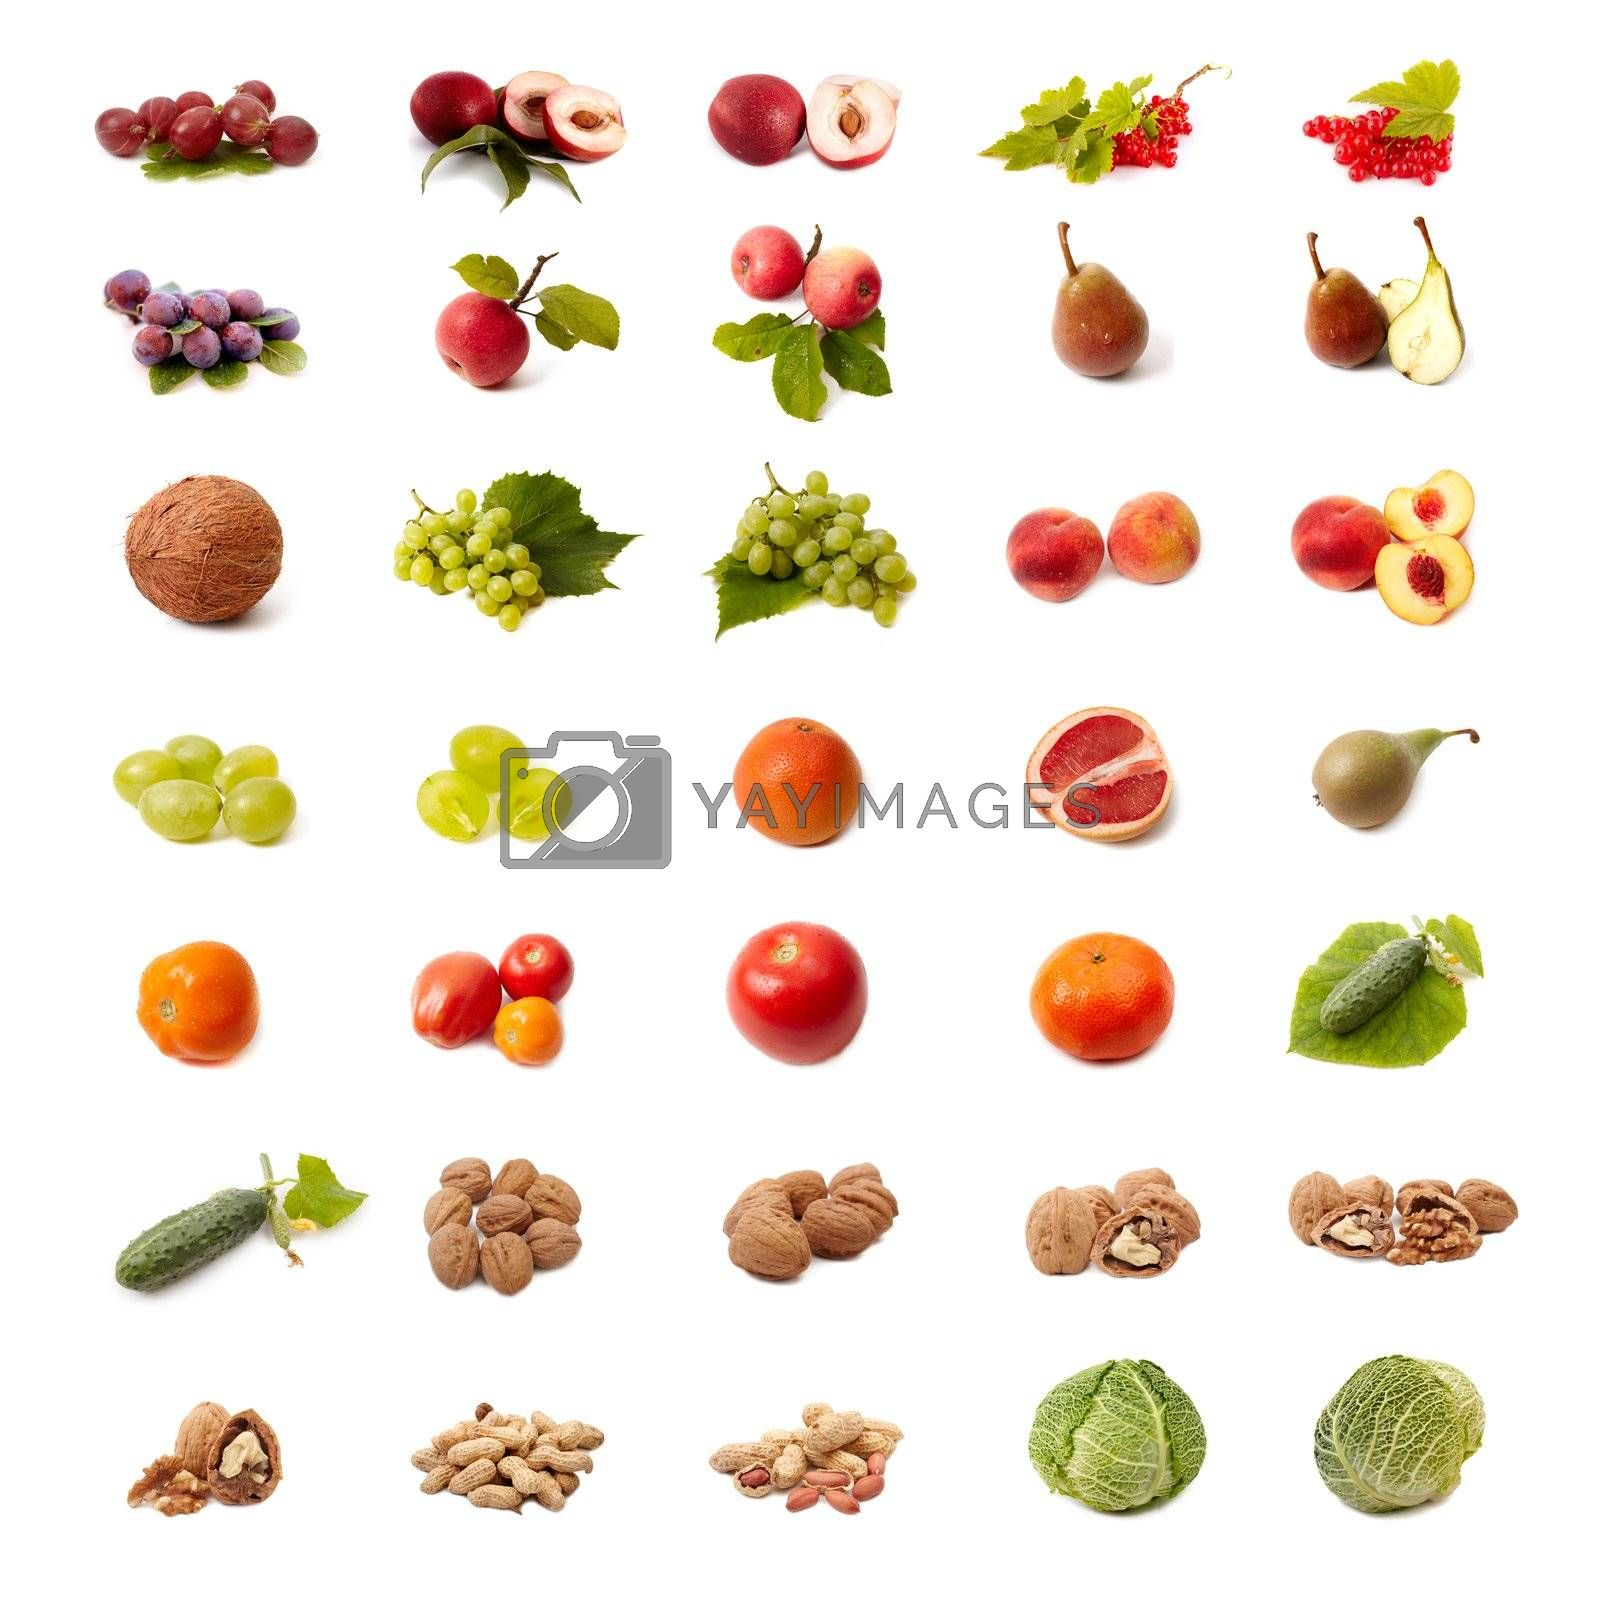 Isolated fruit and vegetable set Isolated fruit and vegetable set by Nikonas